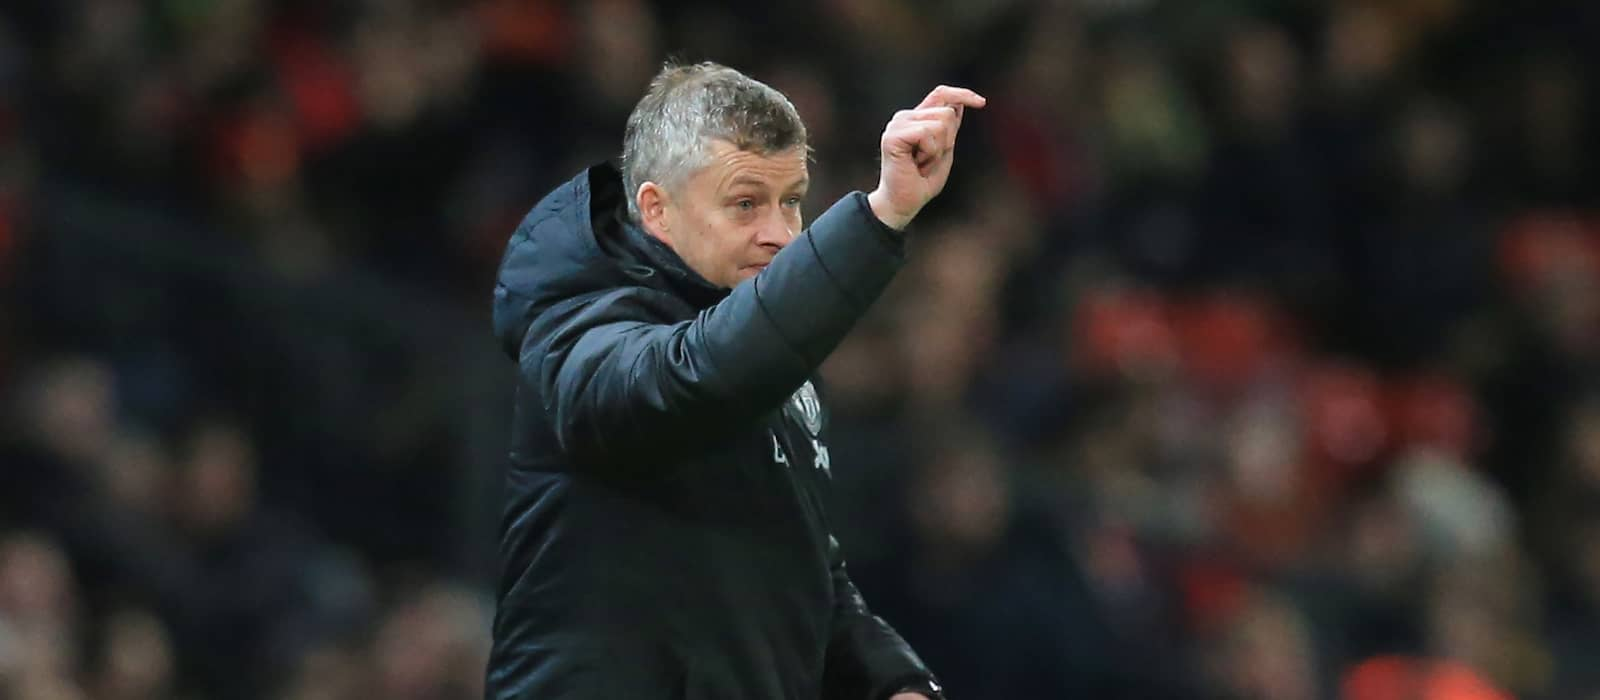 What do Manchester United need to do to secure a top 4 finish?